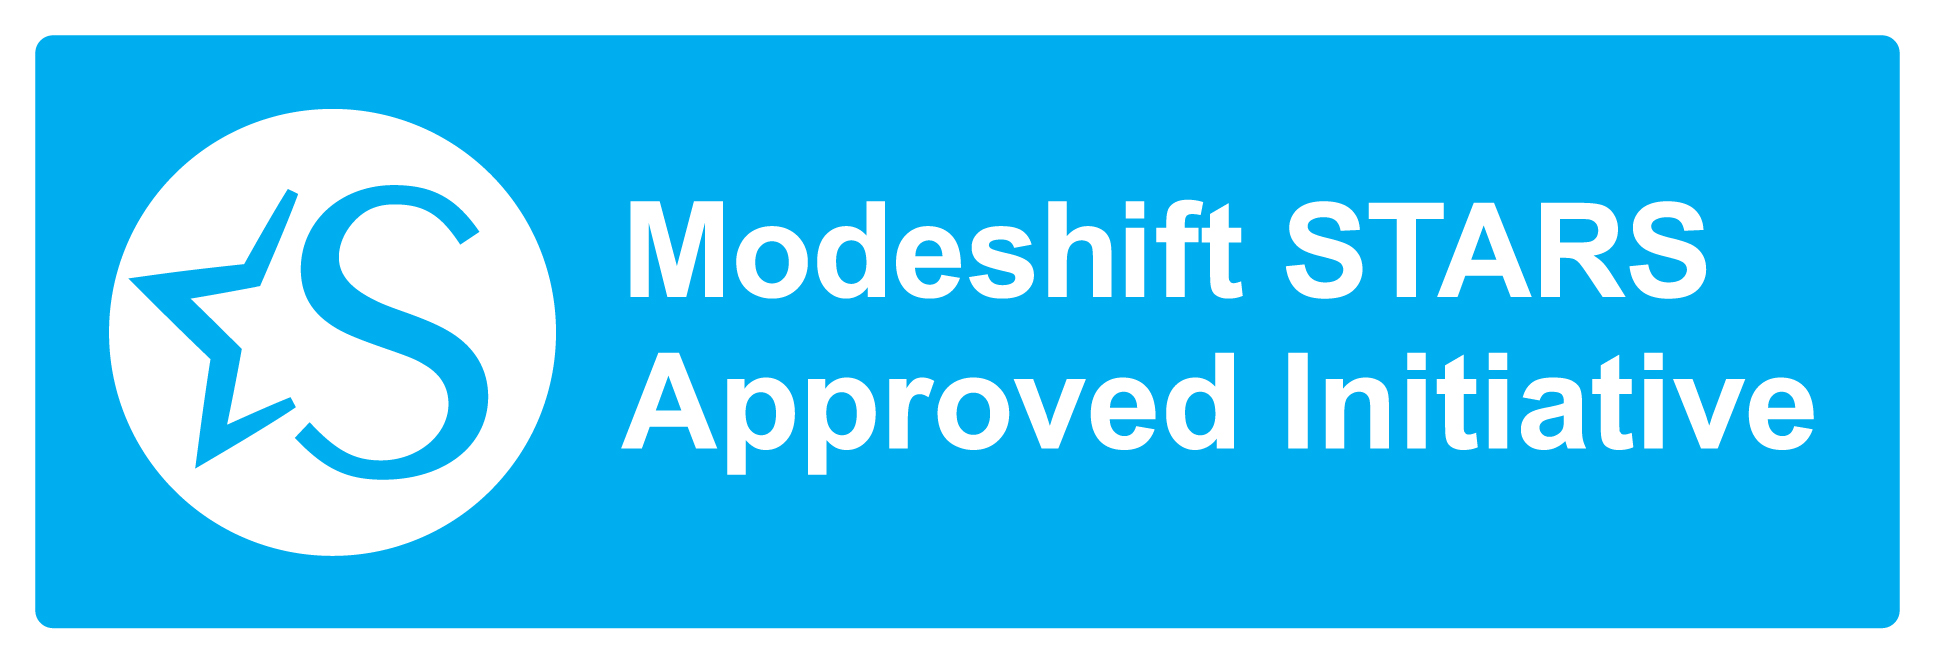 Modeshift STARS Approved Initiative